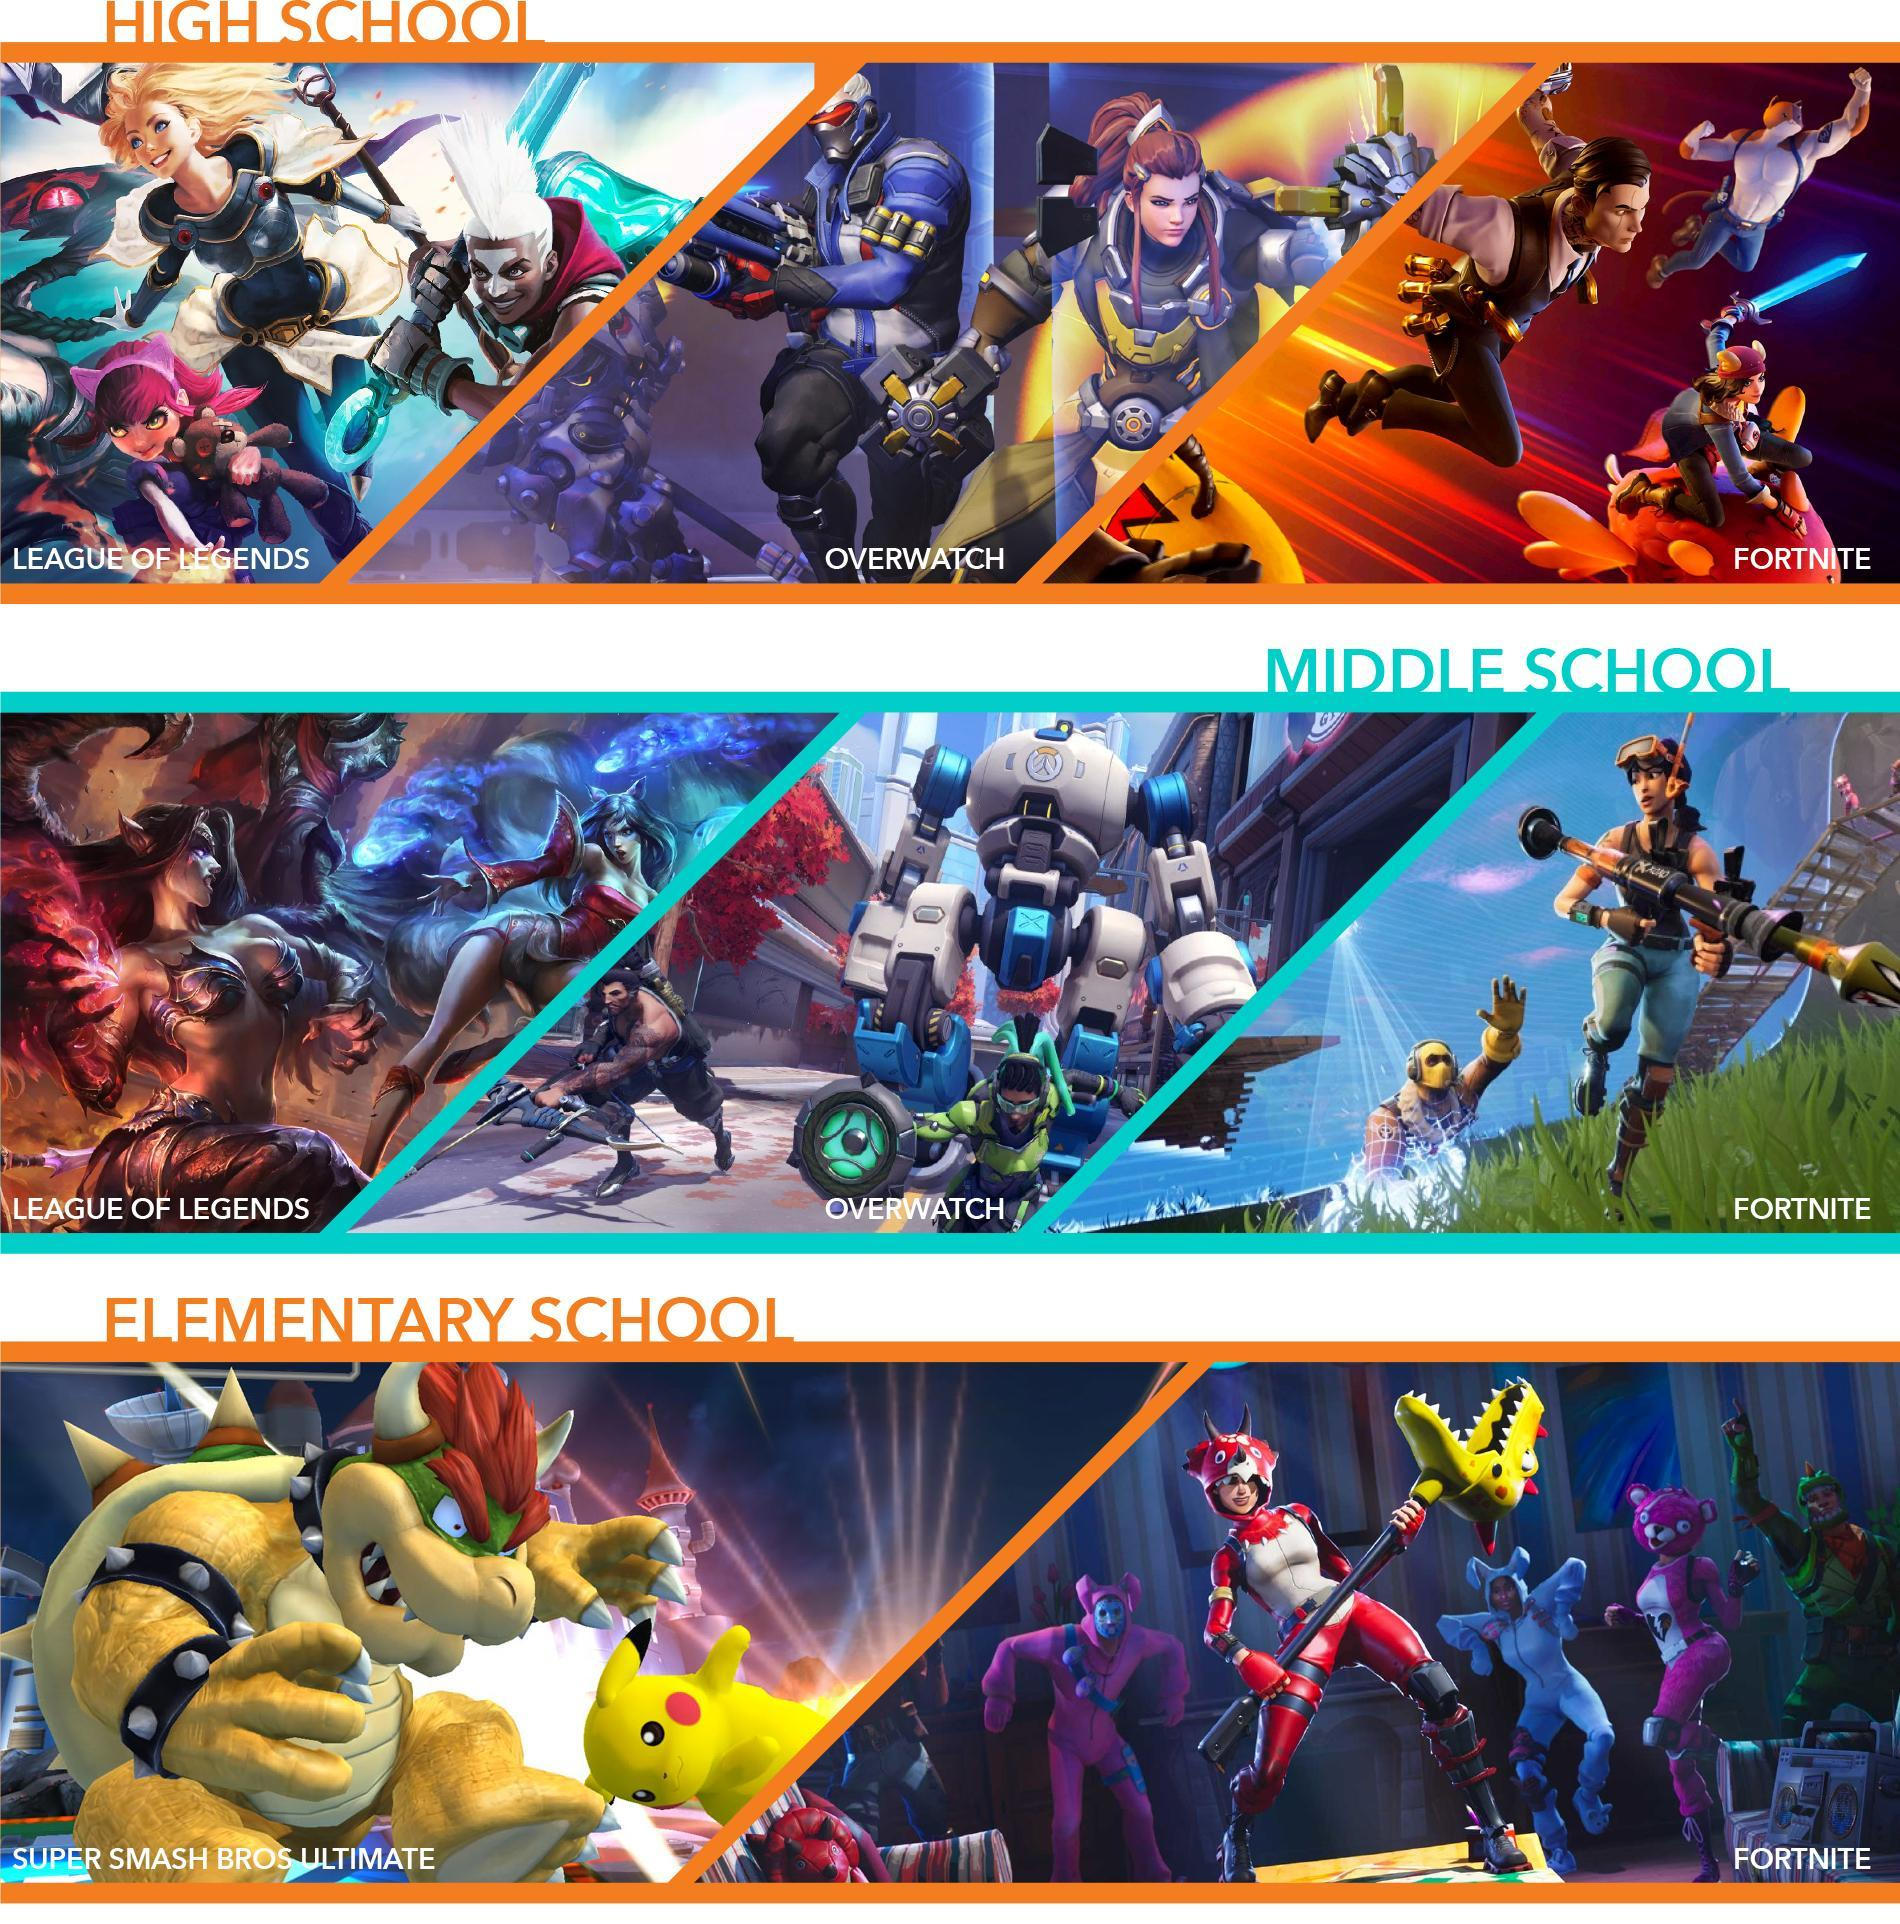 Gaming flyer divided by solid colored lines between pictures of league of legends action shot, overwatch action shot, fortnite action shot and Super Smash Bros Ultimate action shot.